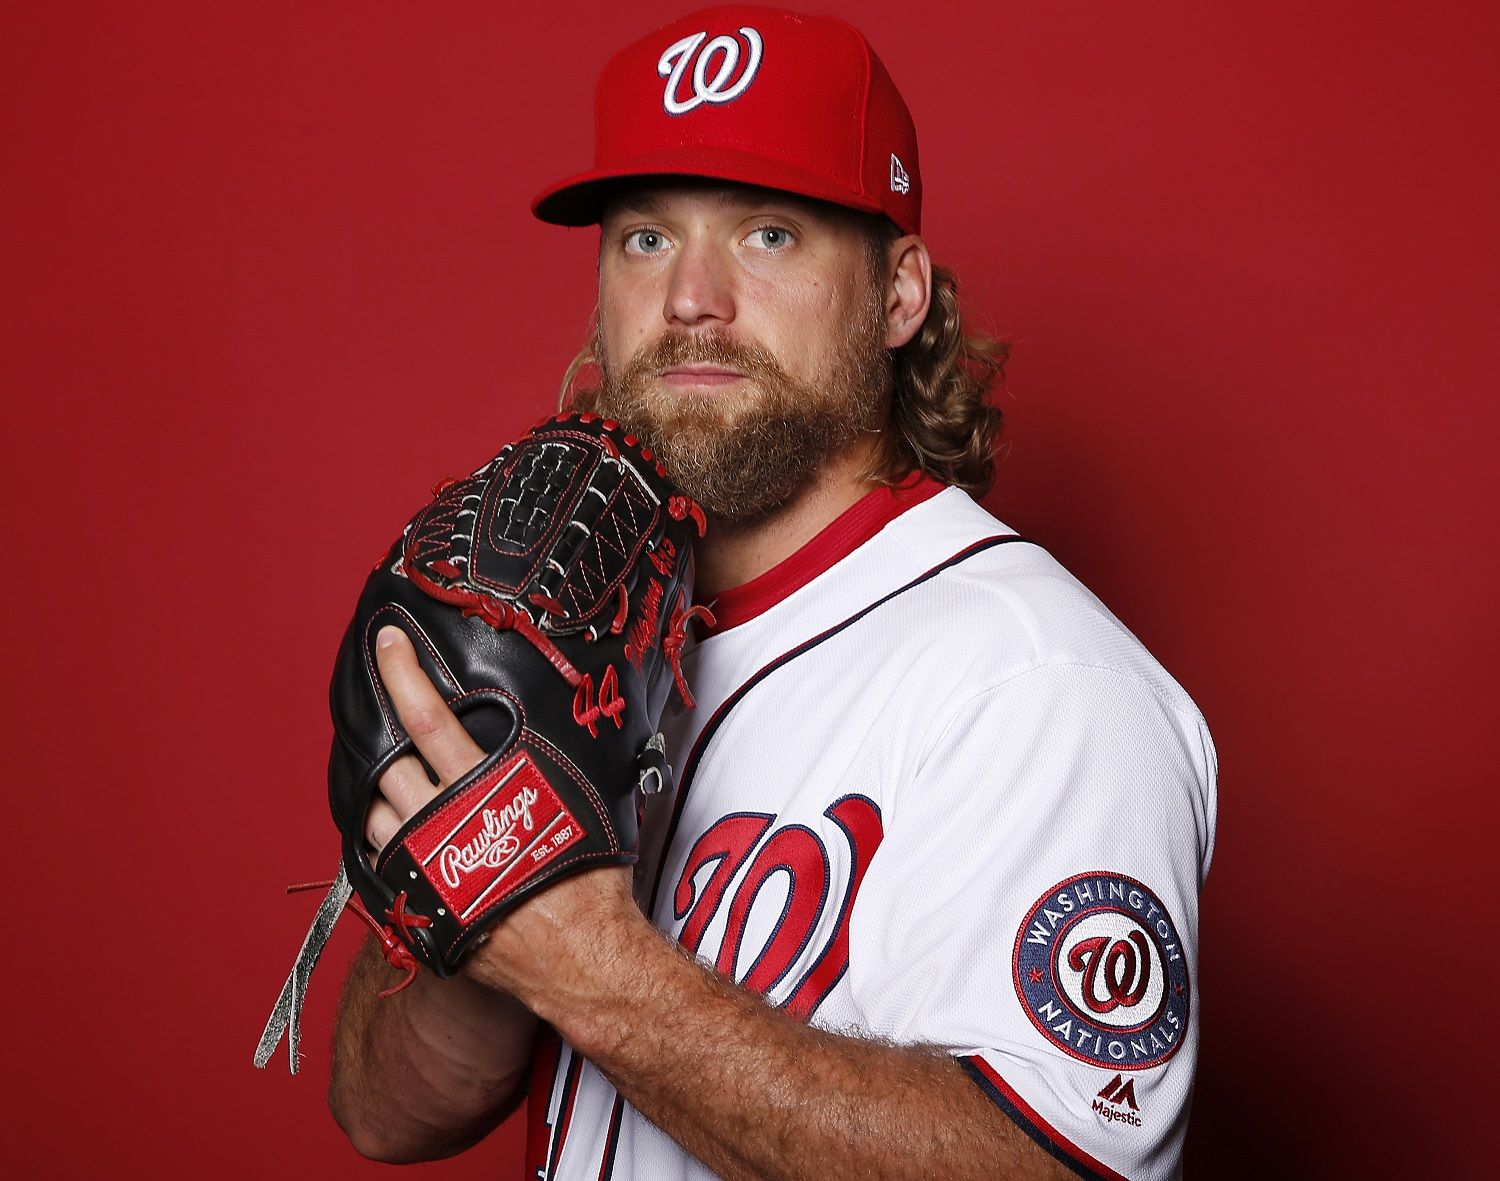 WEST PALM BEACH, FLORIDA - FEBRUARY 22:  Trevor Rosenthal #44 of the Washington Nationals poses for a portrait on Photo Day at FITTEAM Ballpark of The Palm Beaches during on February 22, 2019 in West Palm Beach, Florida. (Photo by Michael Reaves/Getty Images)